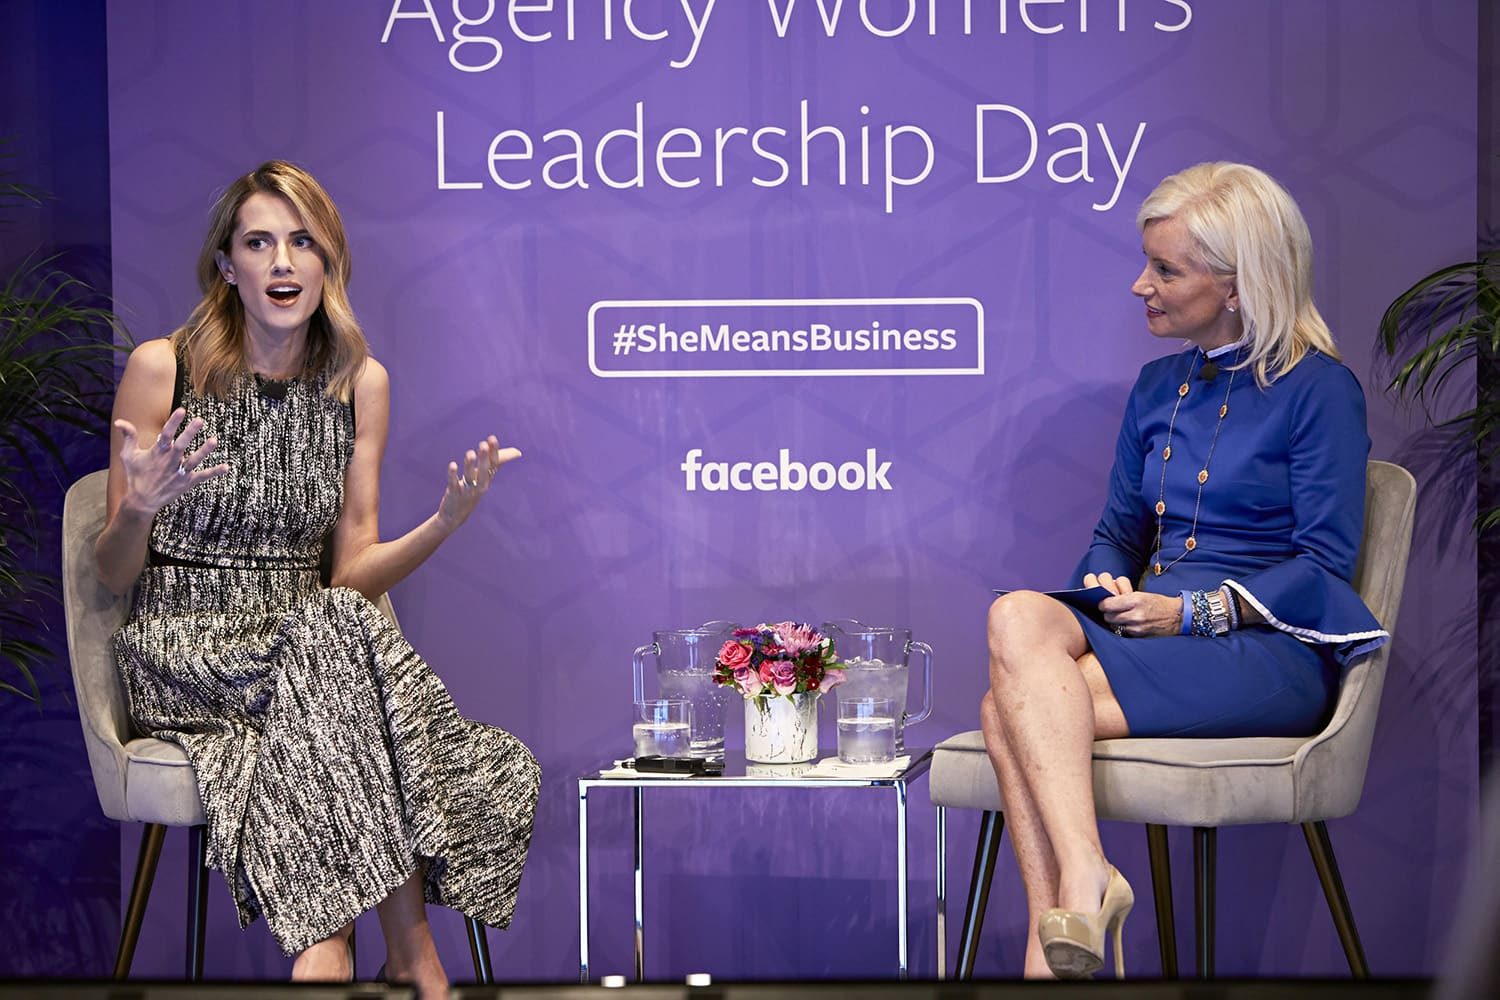 Agency Women's Leadership Day